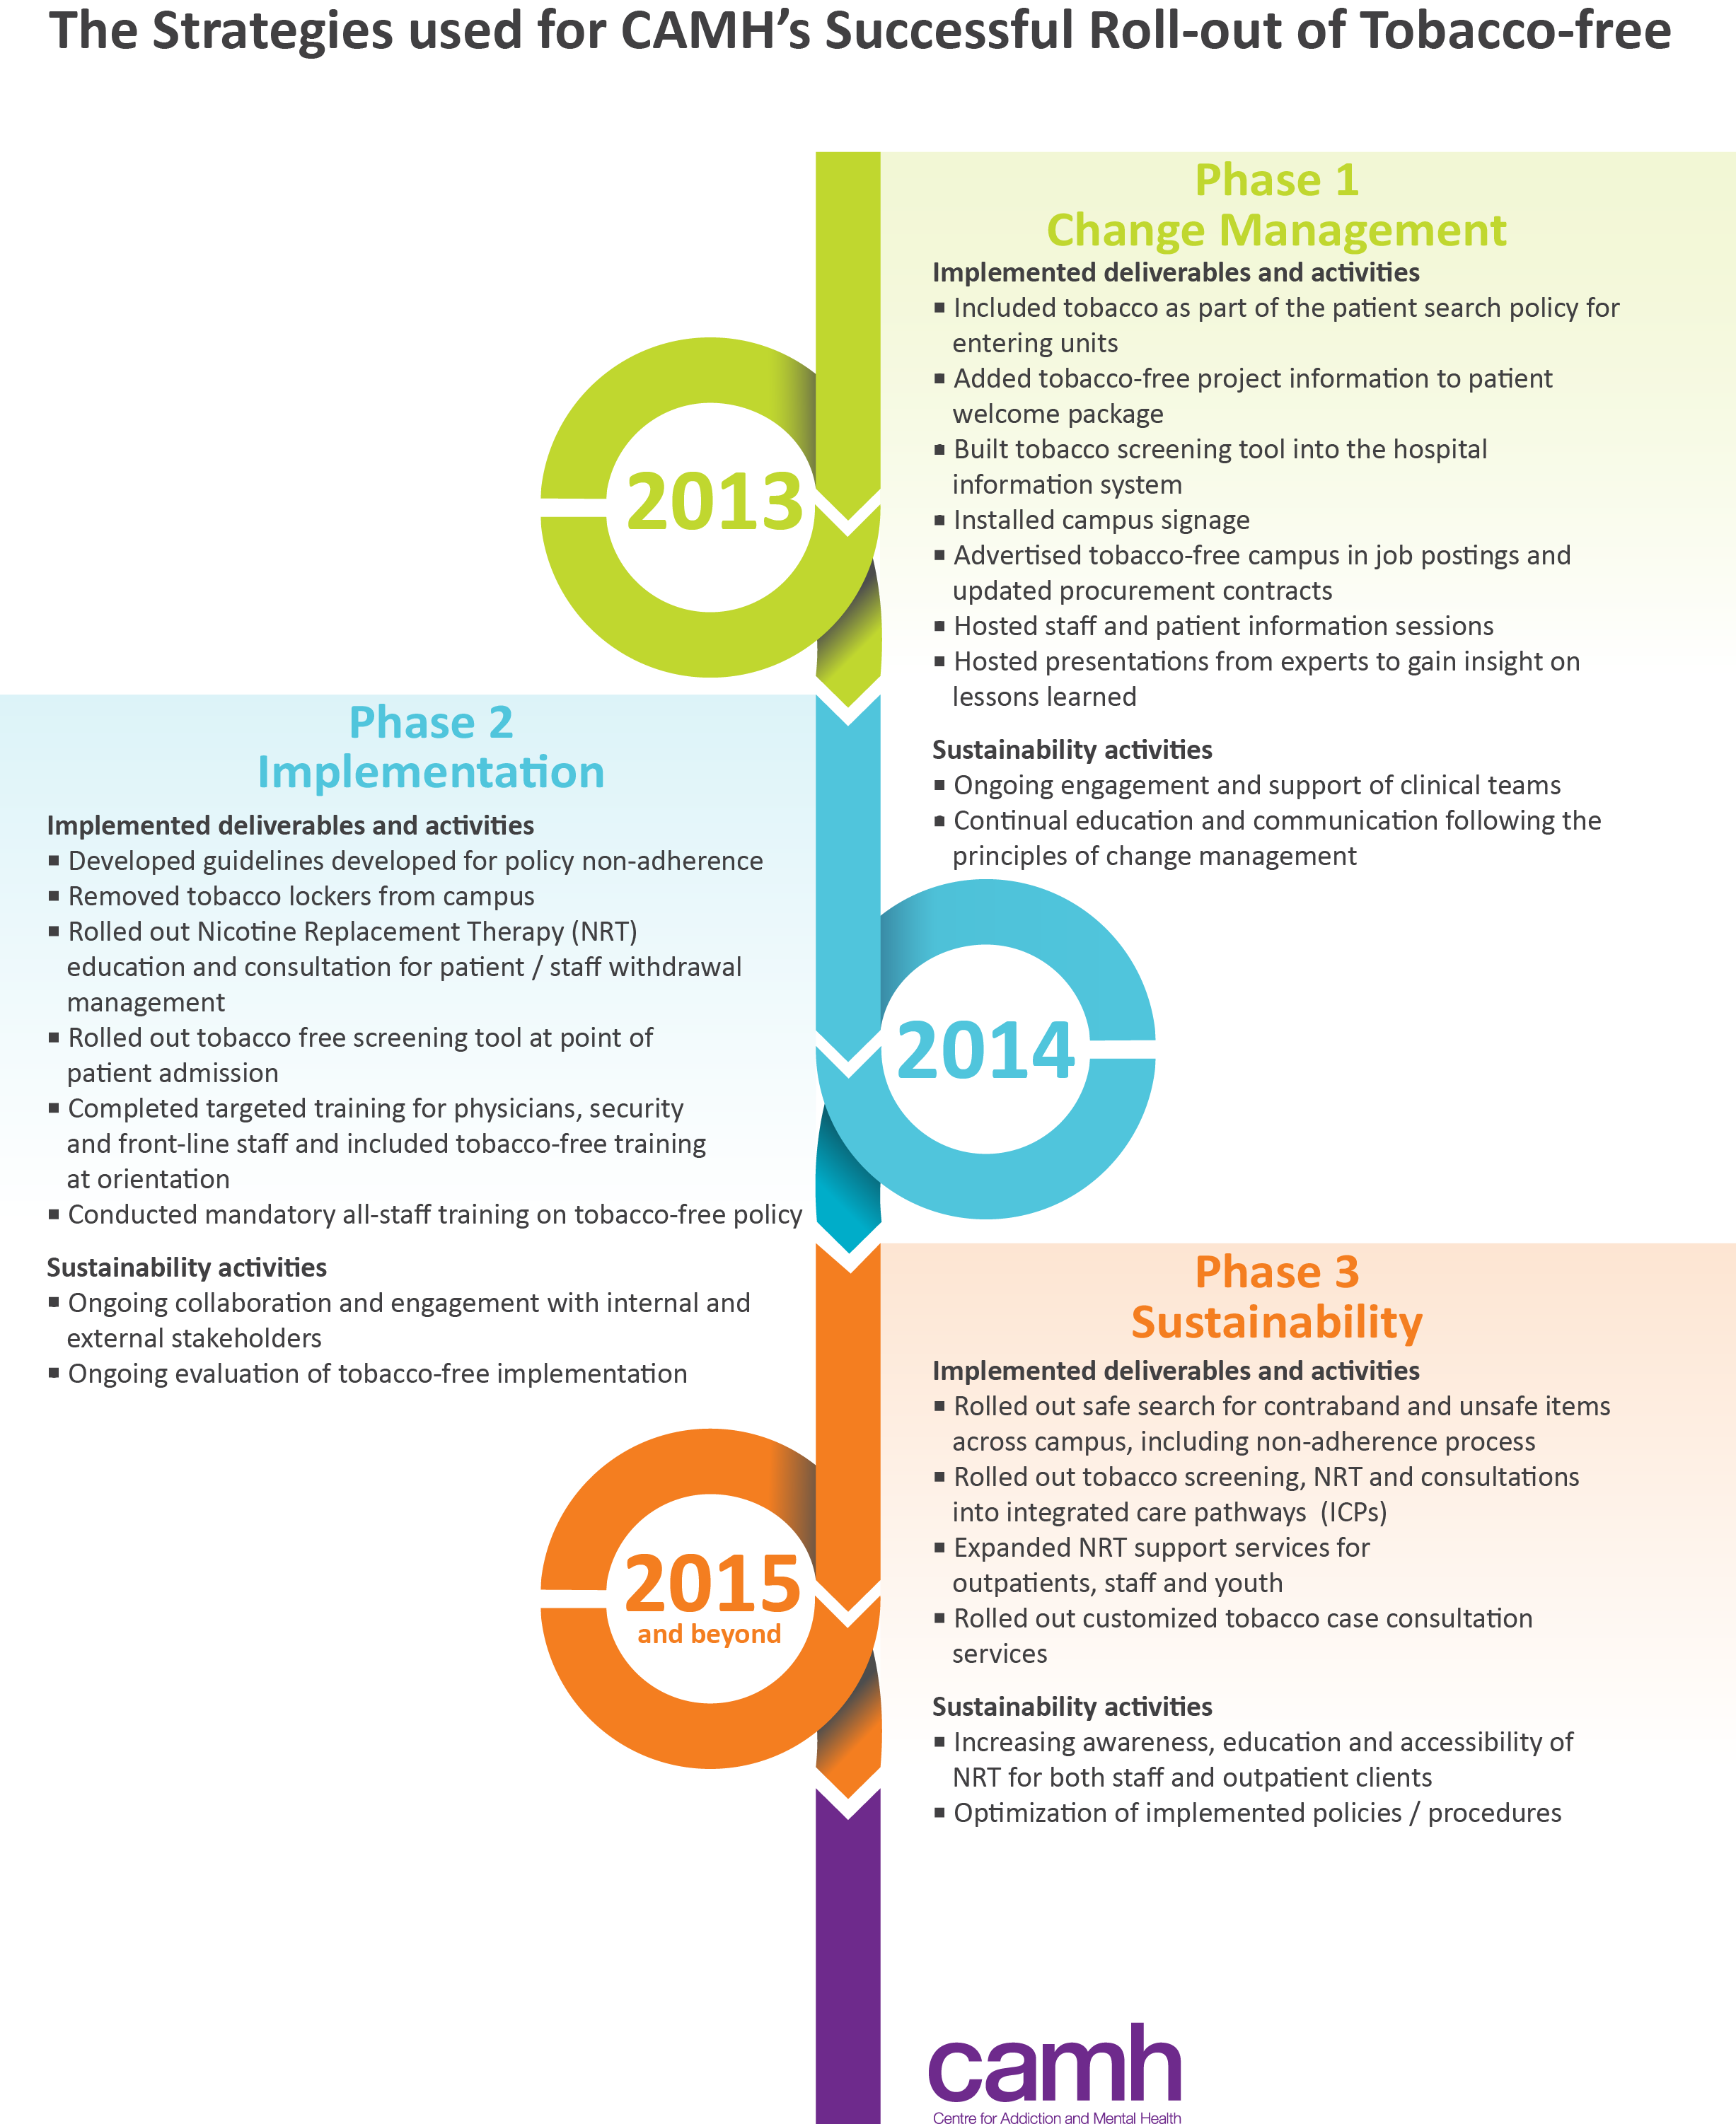 Timeline showing implementation of tobacco-free at CAMH